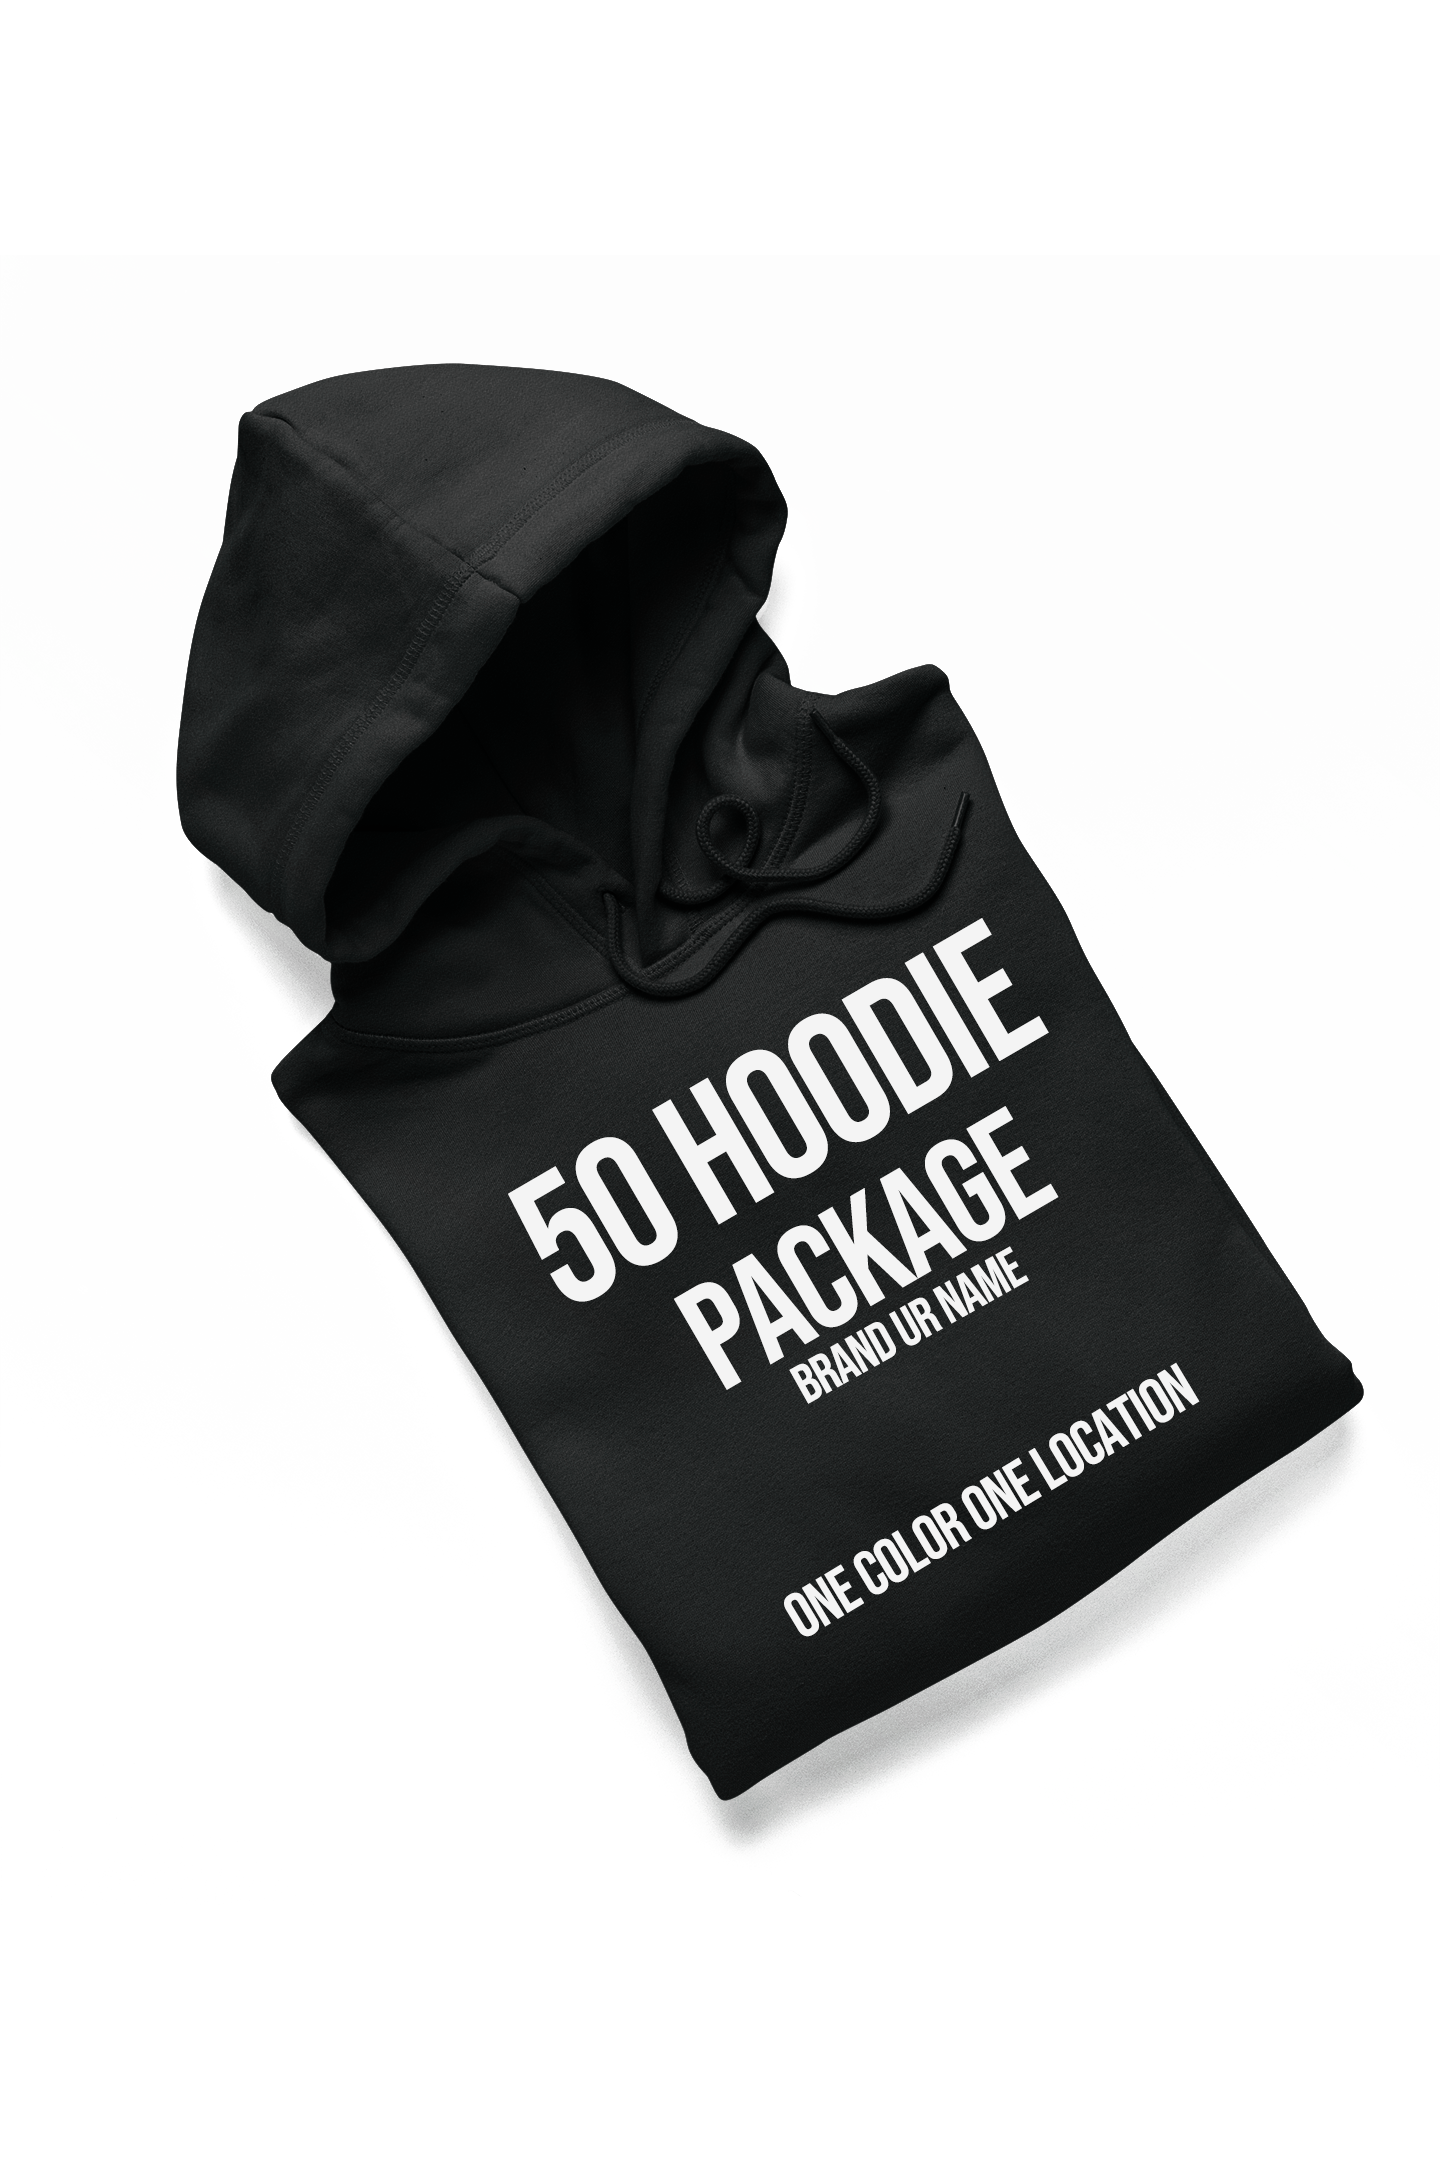 50 Hoodie Package- Screen Print